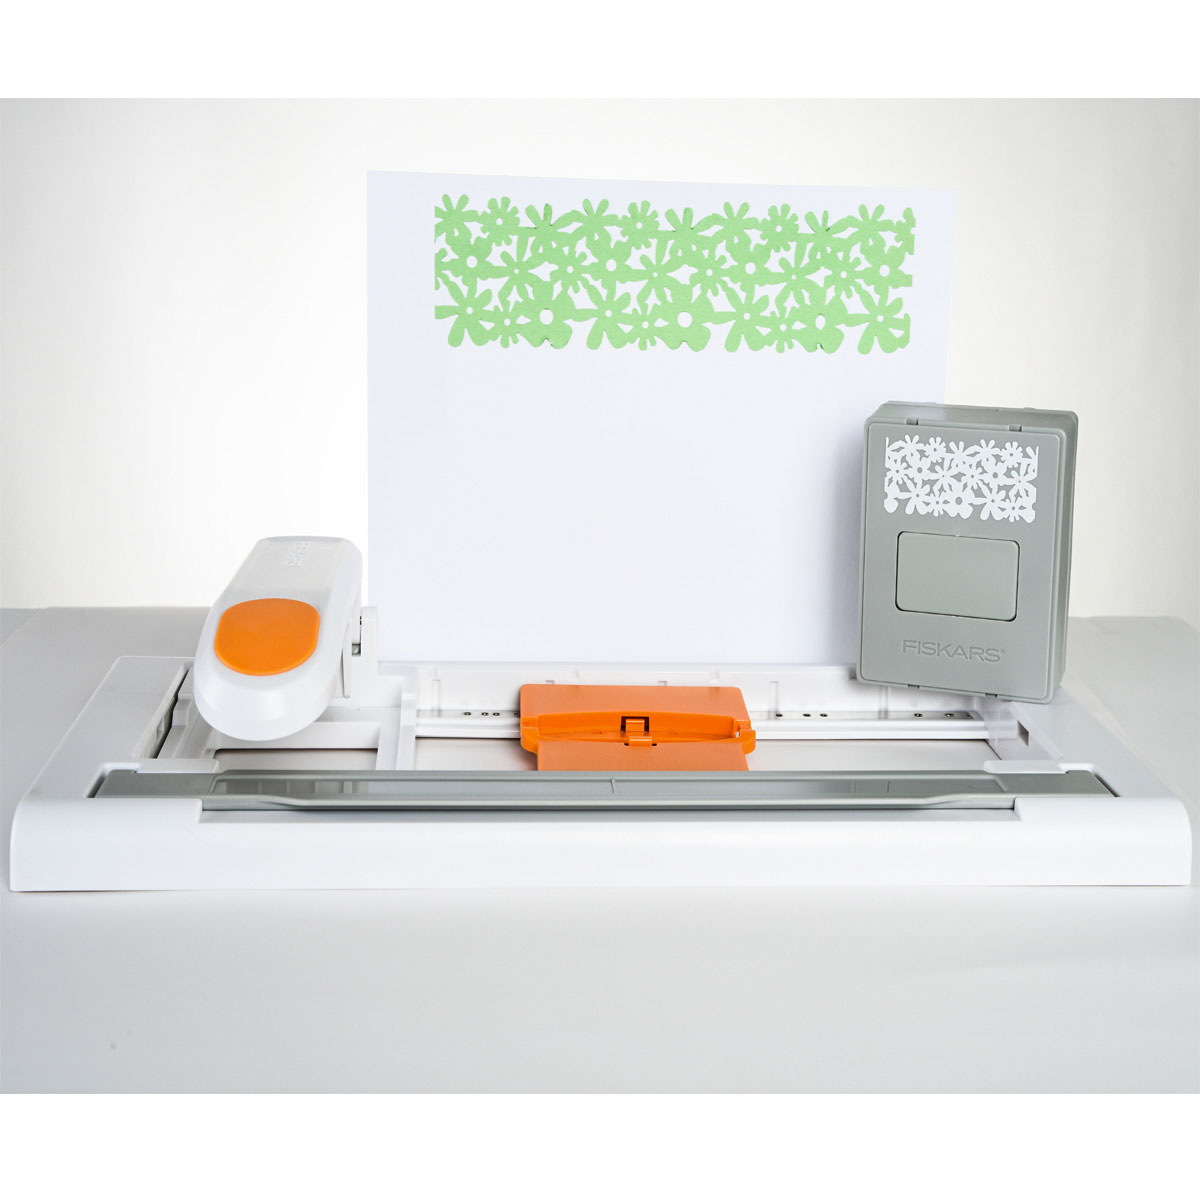 fiskars advantedge punch system create perfect borders. Black Bedroom Furniture Sets. Home Design Ideas